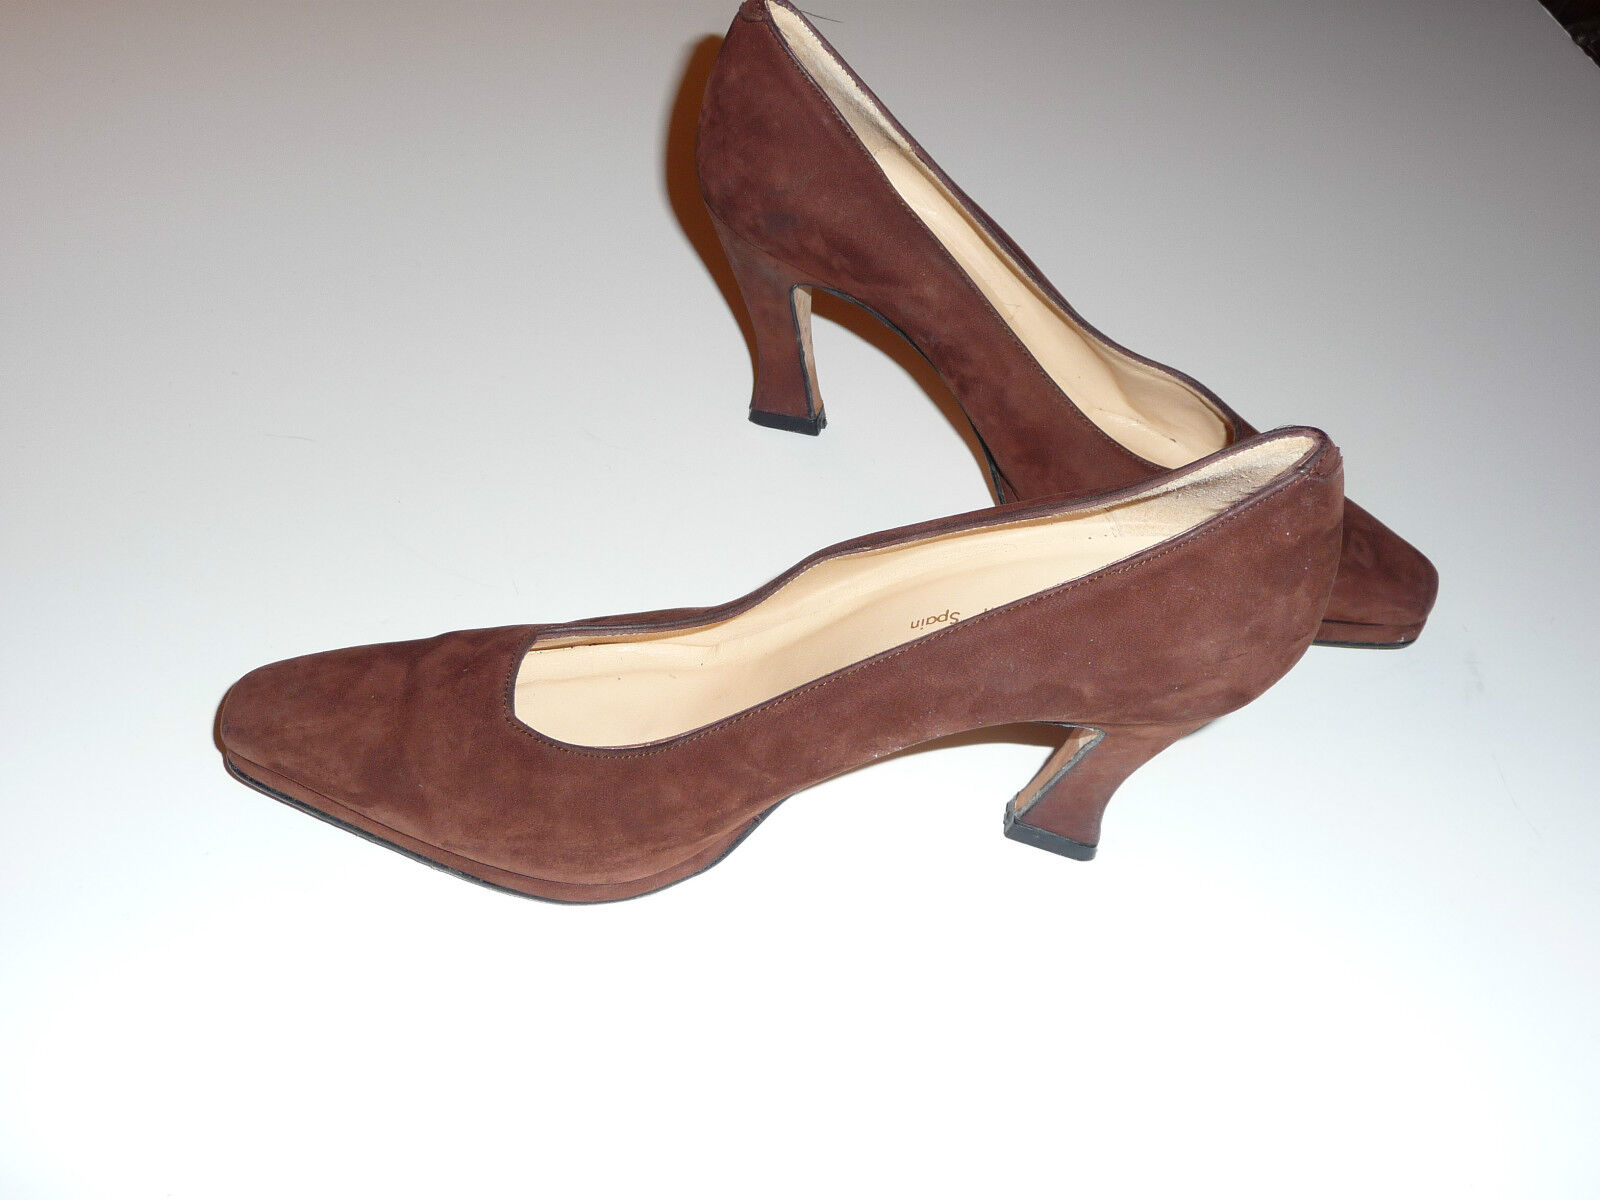 Sacha London braun braun braun Suede Pumps Heels Flarot Heel 6.5 B Made in Spain EUC 75badb